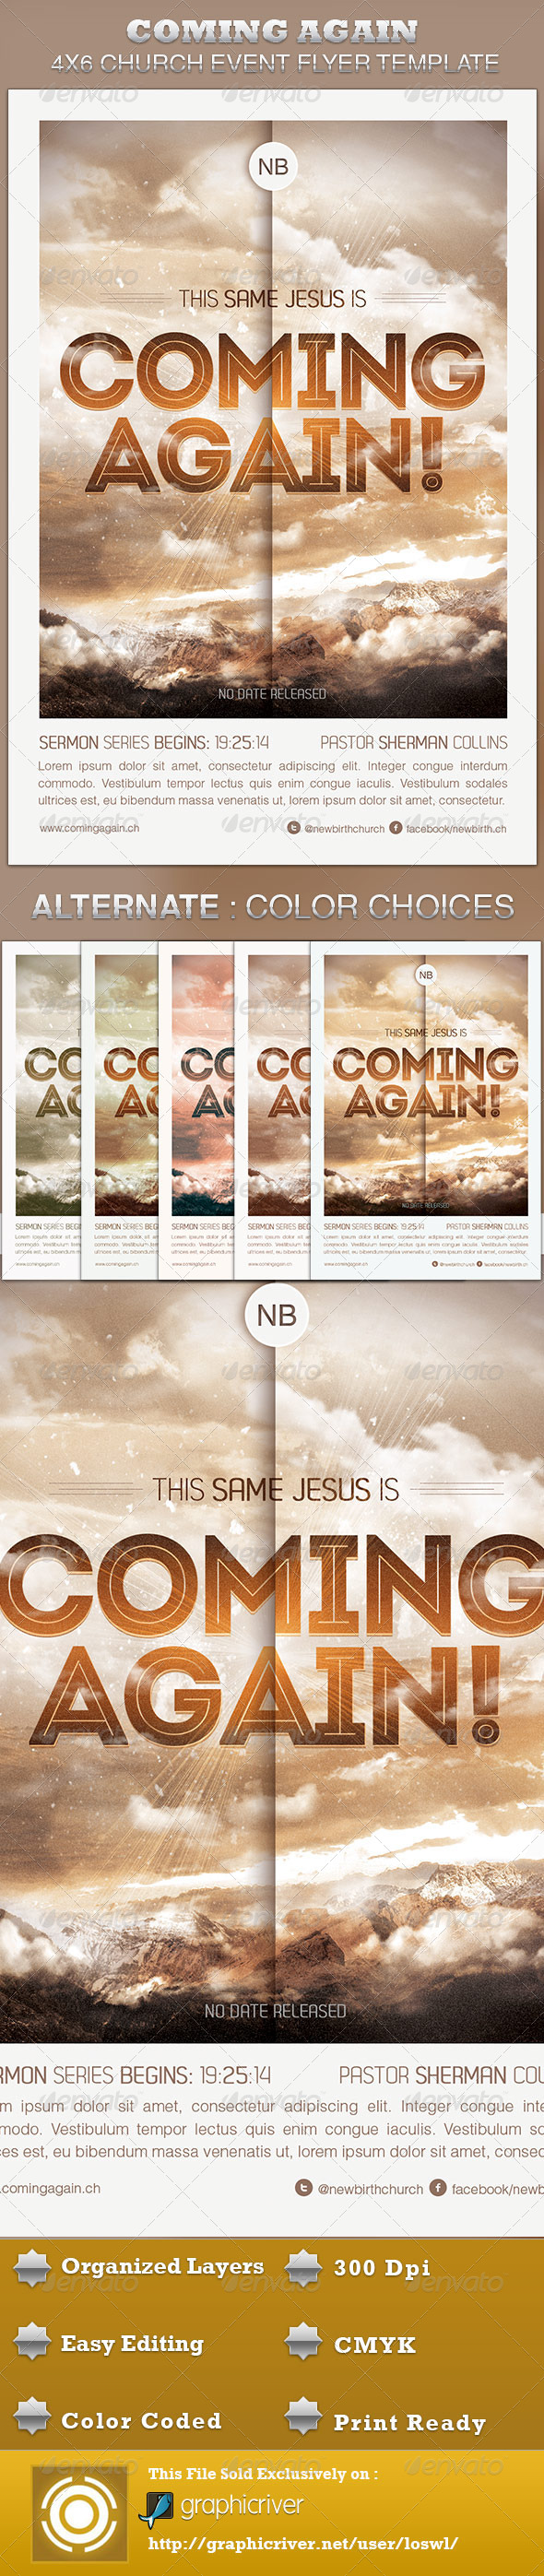 Coming Again Church Flyer Template - Church Flyers